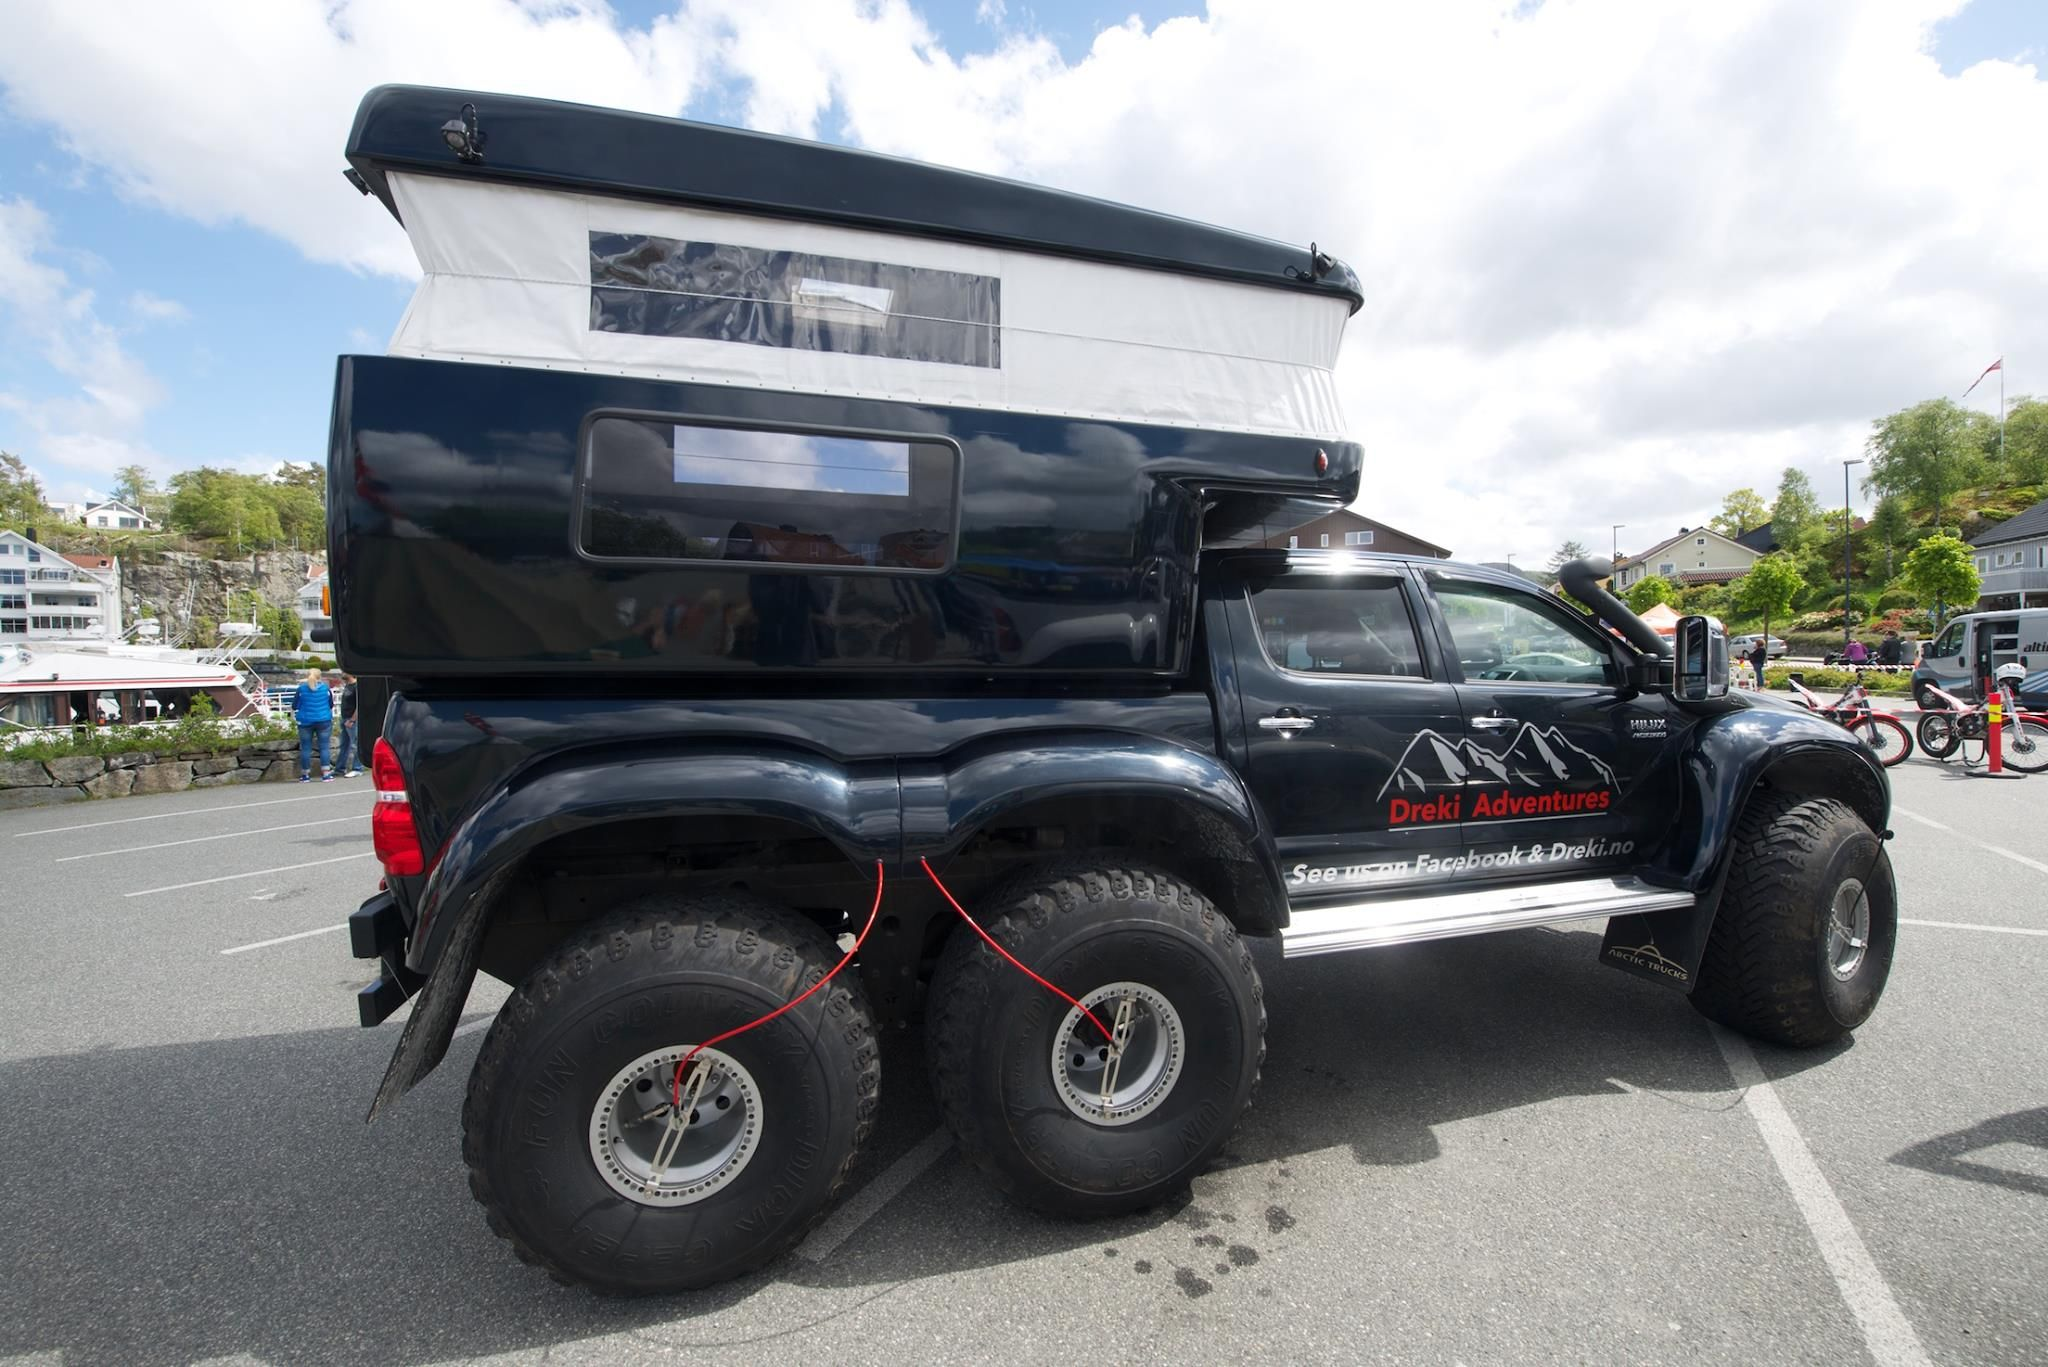 Toyota hi lux arctic trucks conversion with a slide in pop up camper for colder climate owned by dreki adventures iceland and norway made by arctic